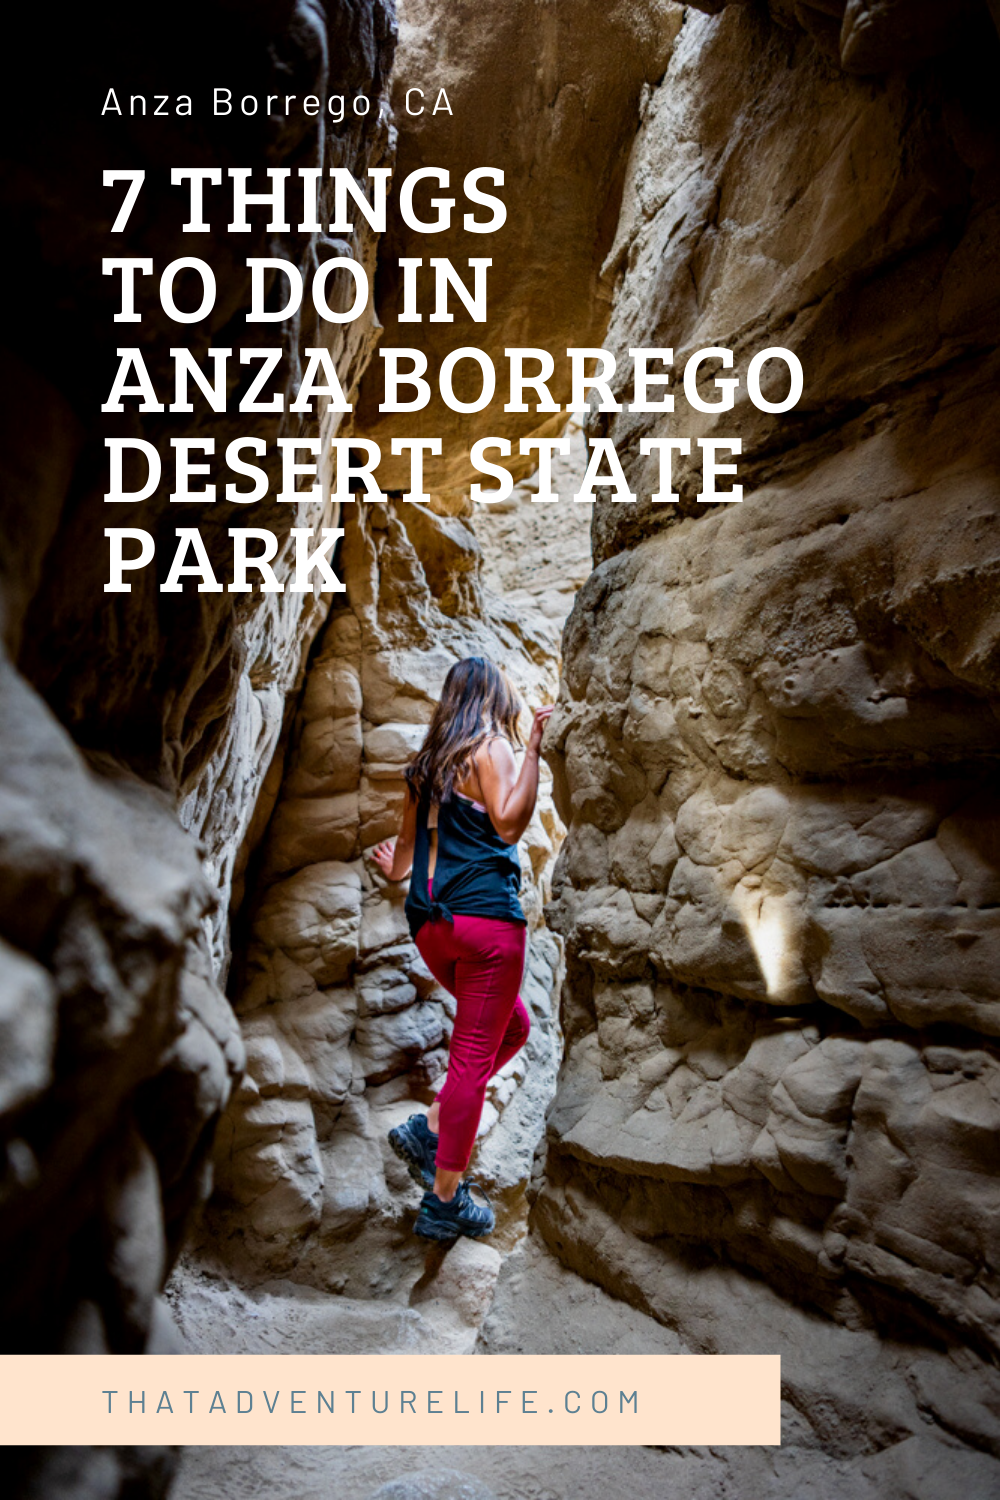 7 Things to Do in Anza Borrego Desert State Park,